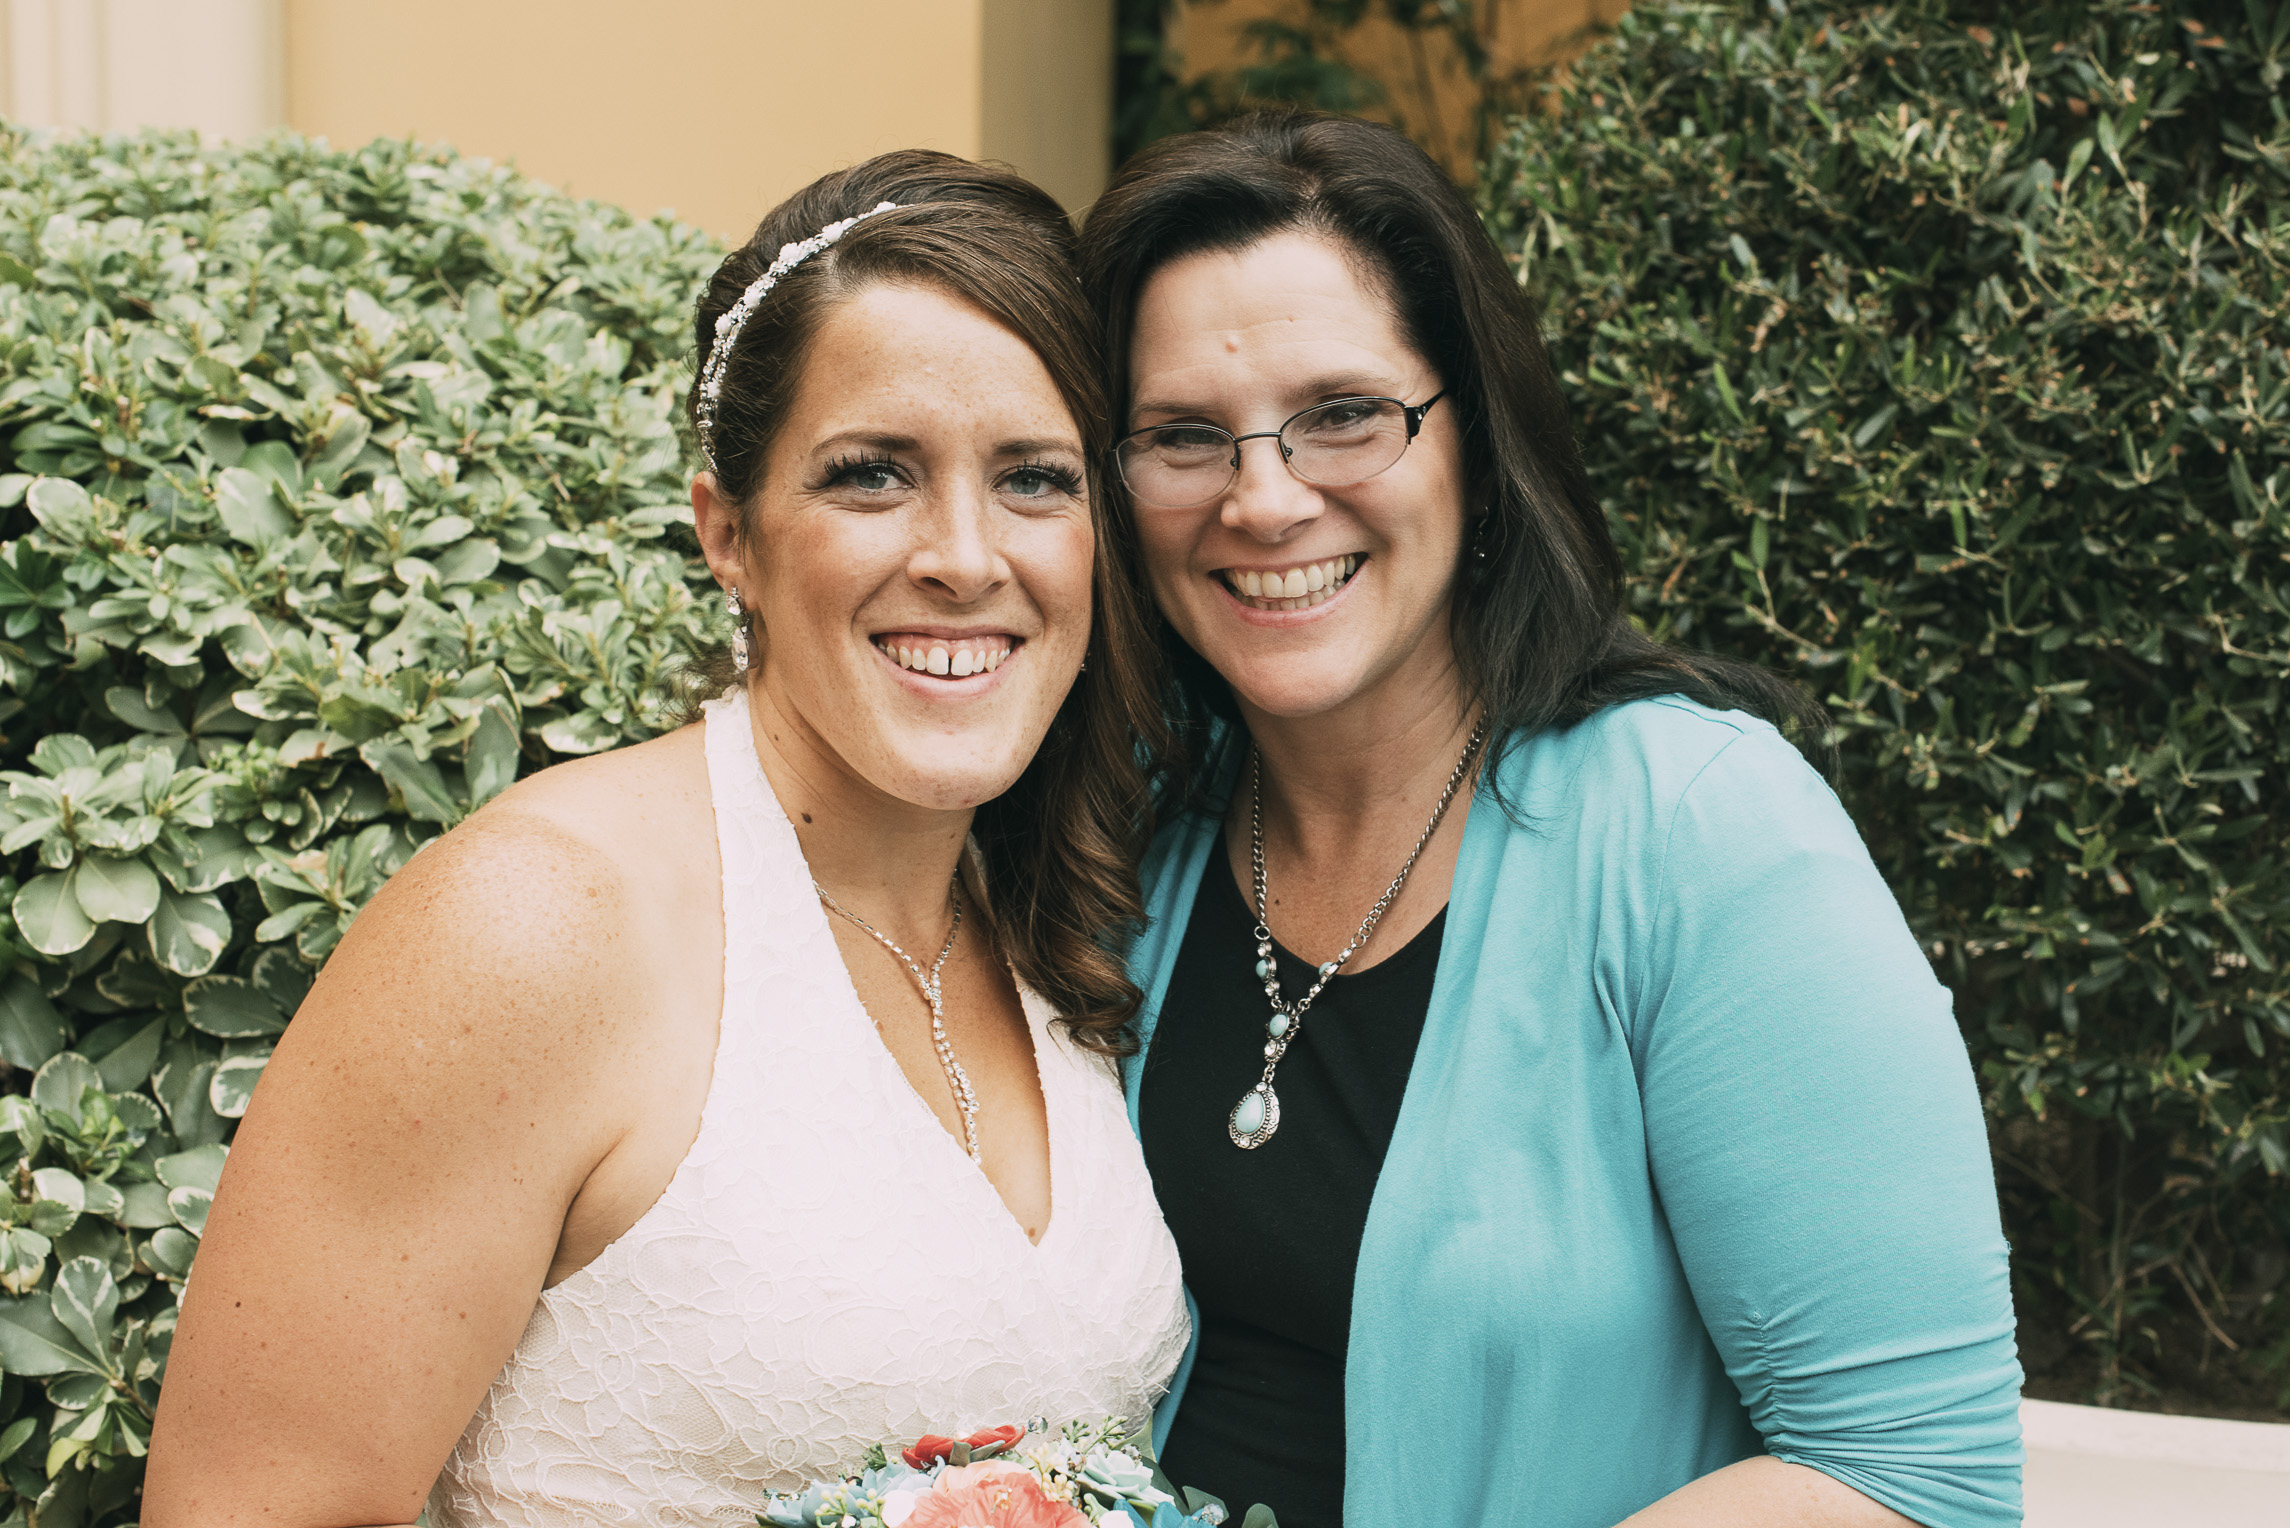 050416MATT & MICHELLE STARK WEDDING - DEBI RAE PHOTOGRAPHY-38.jpg